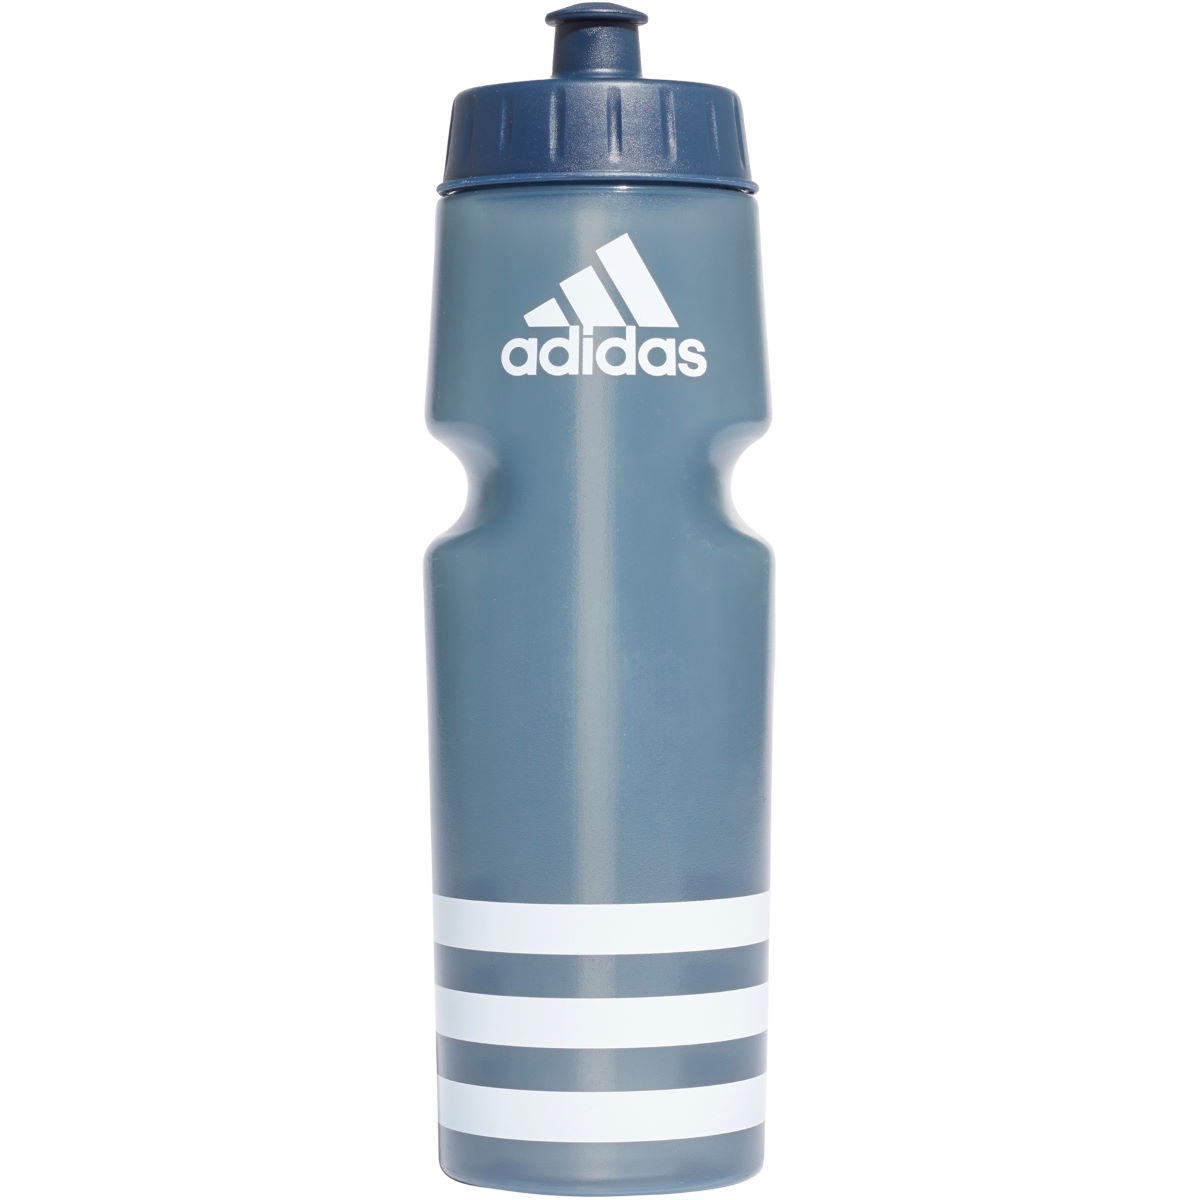 adidas Performance Bottle - Bidones de agua